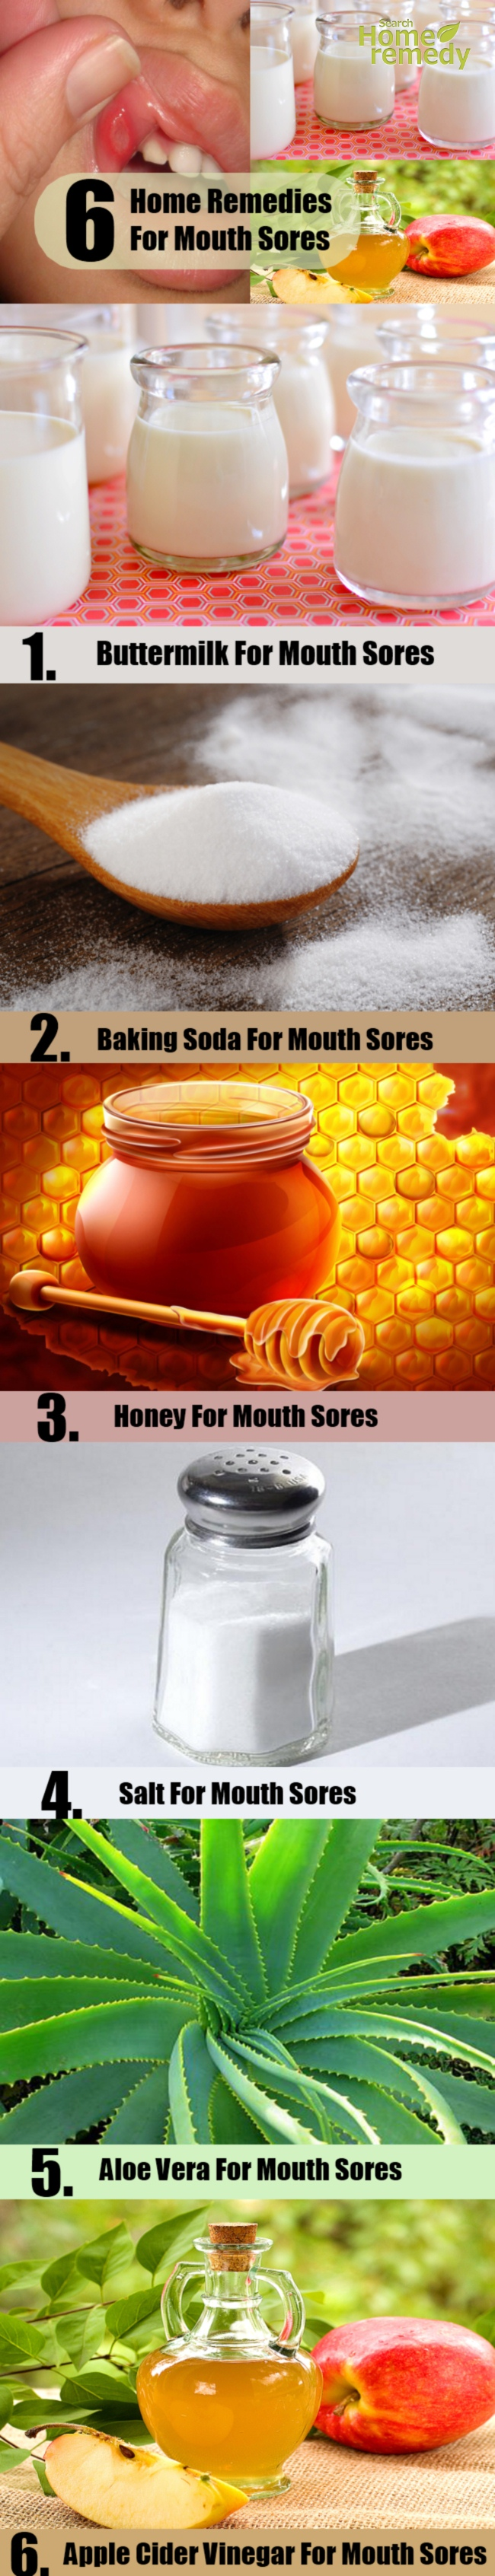 6 Home Remedies For Mouth Sores